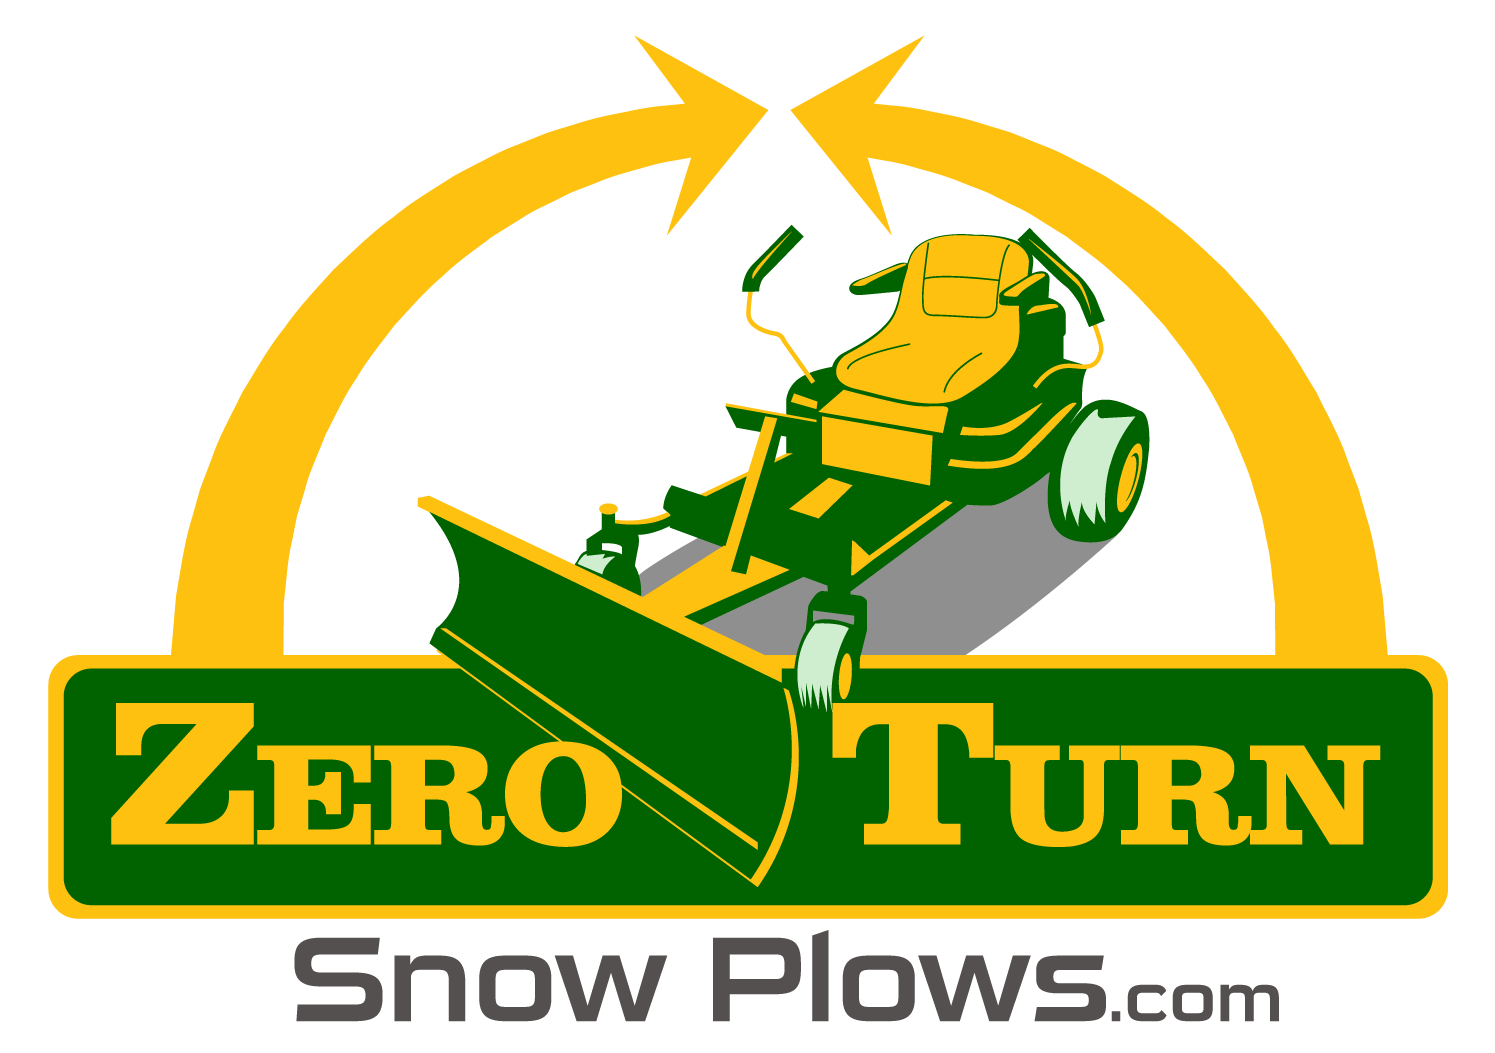 Zero Turn Snow Plows - Zero Turn Snow Plows